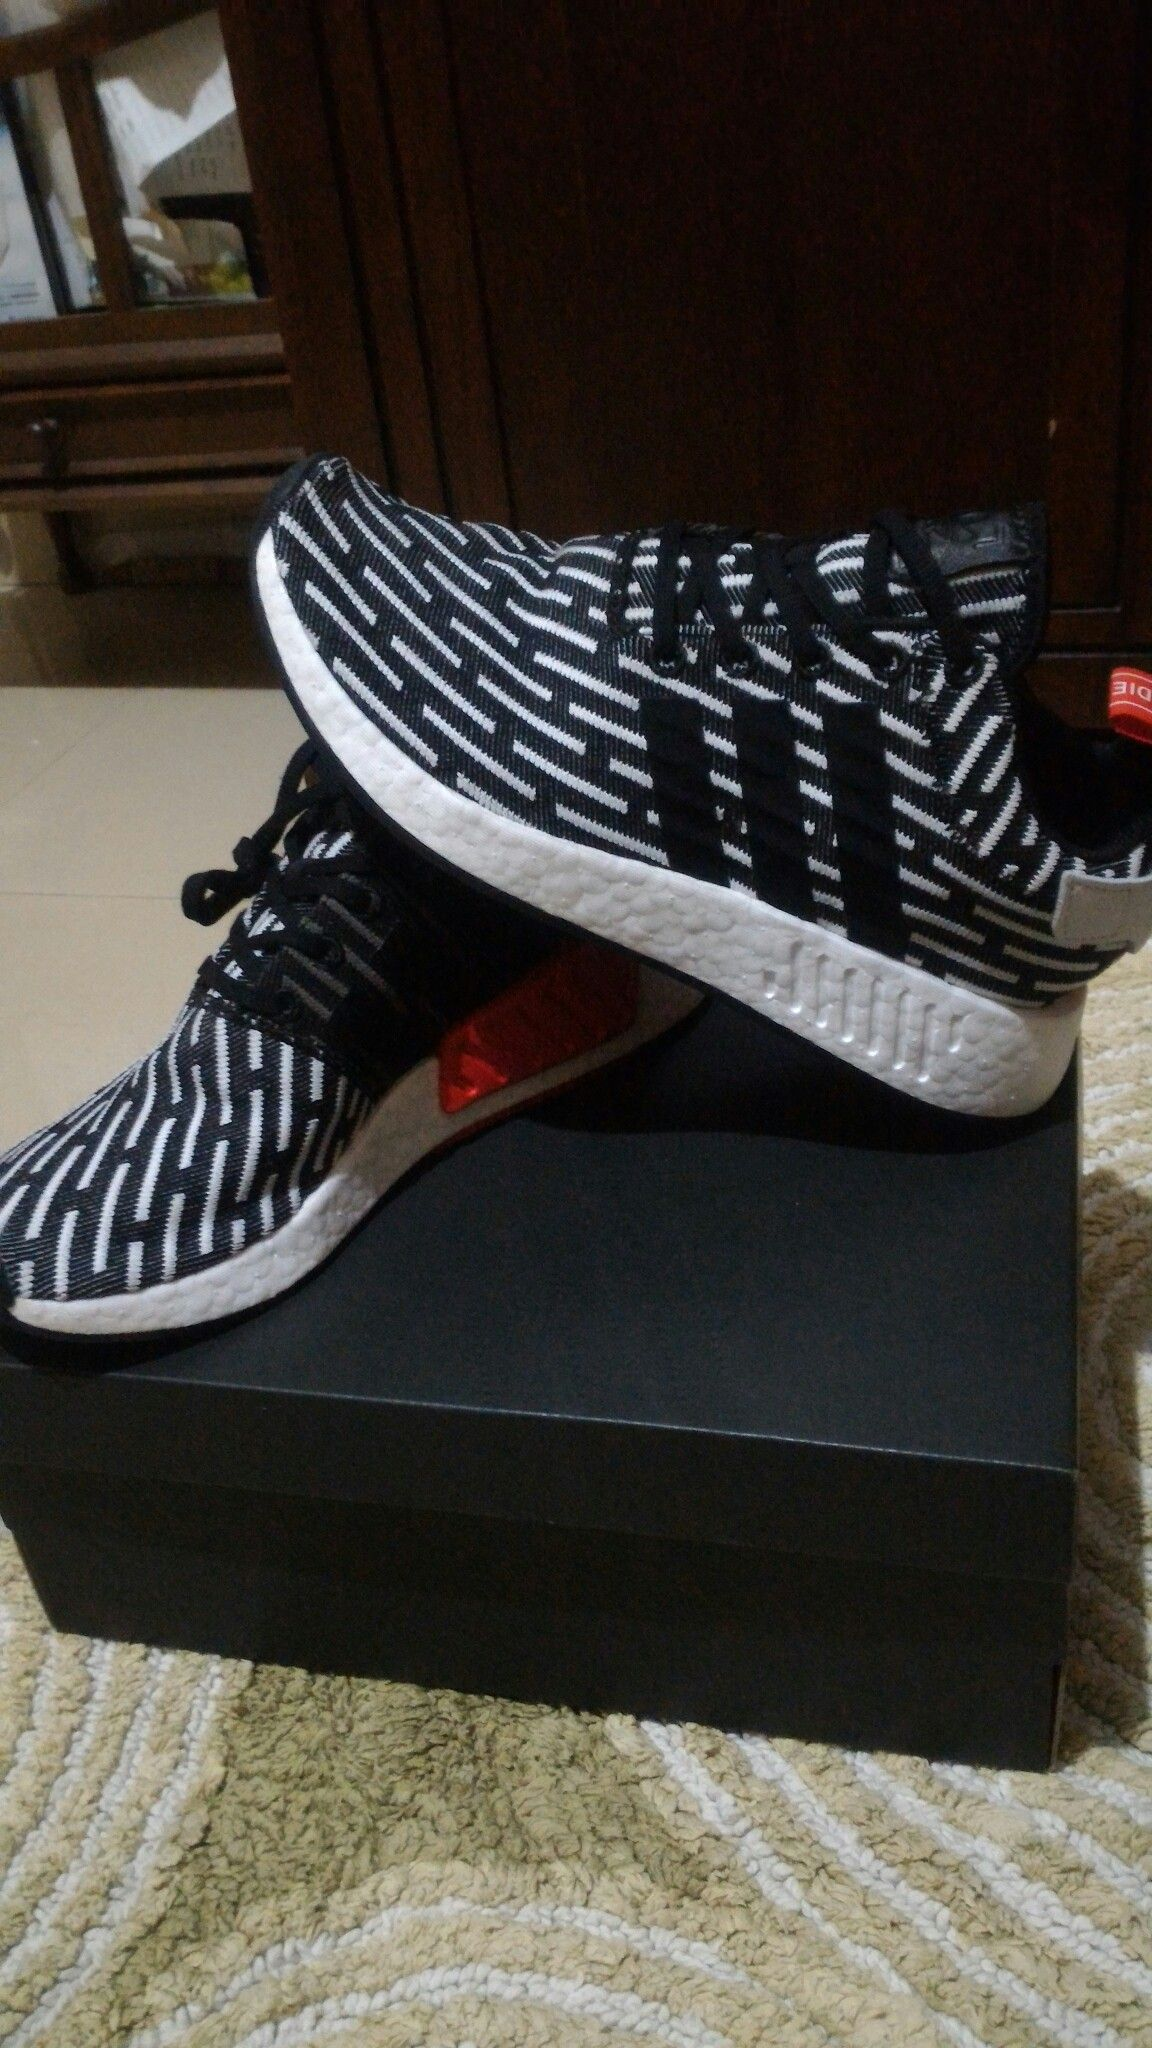 BUY Adidas NMD R2 Primeknit Black White